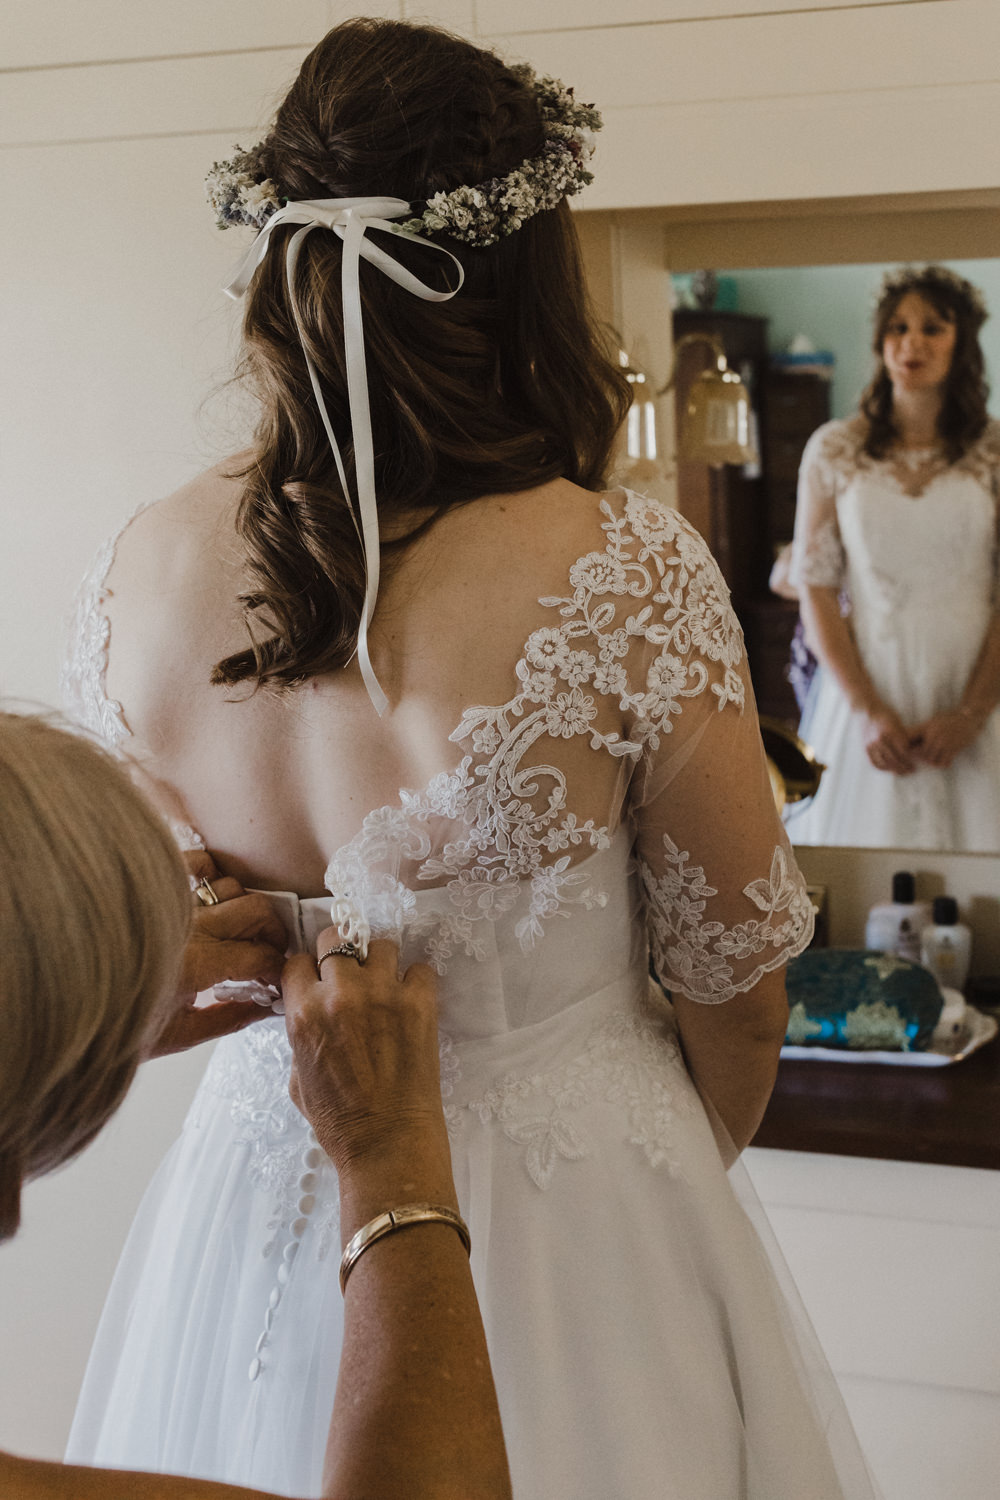 Dress Gown Bride Bridal Lace Short Sleeves Low Back Flower Crown Seaside Wedding Oli and Steph Photography